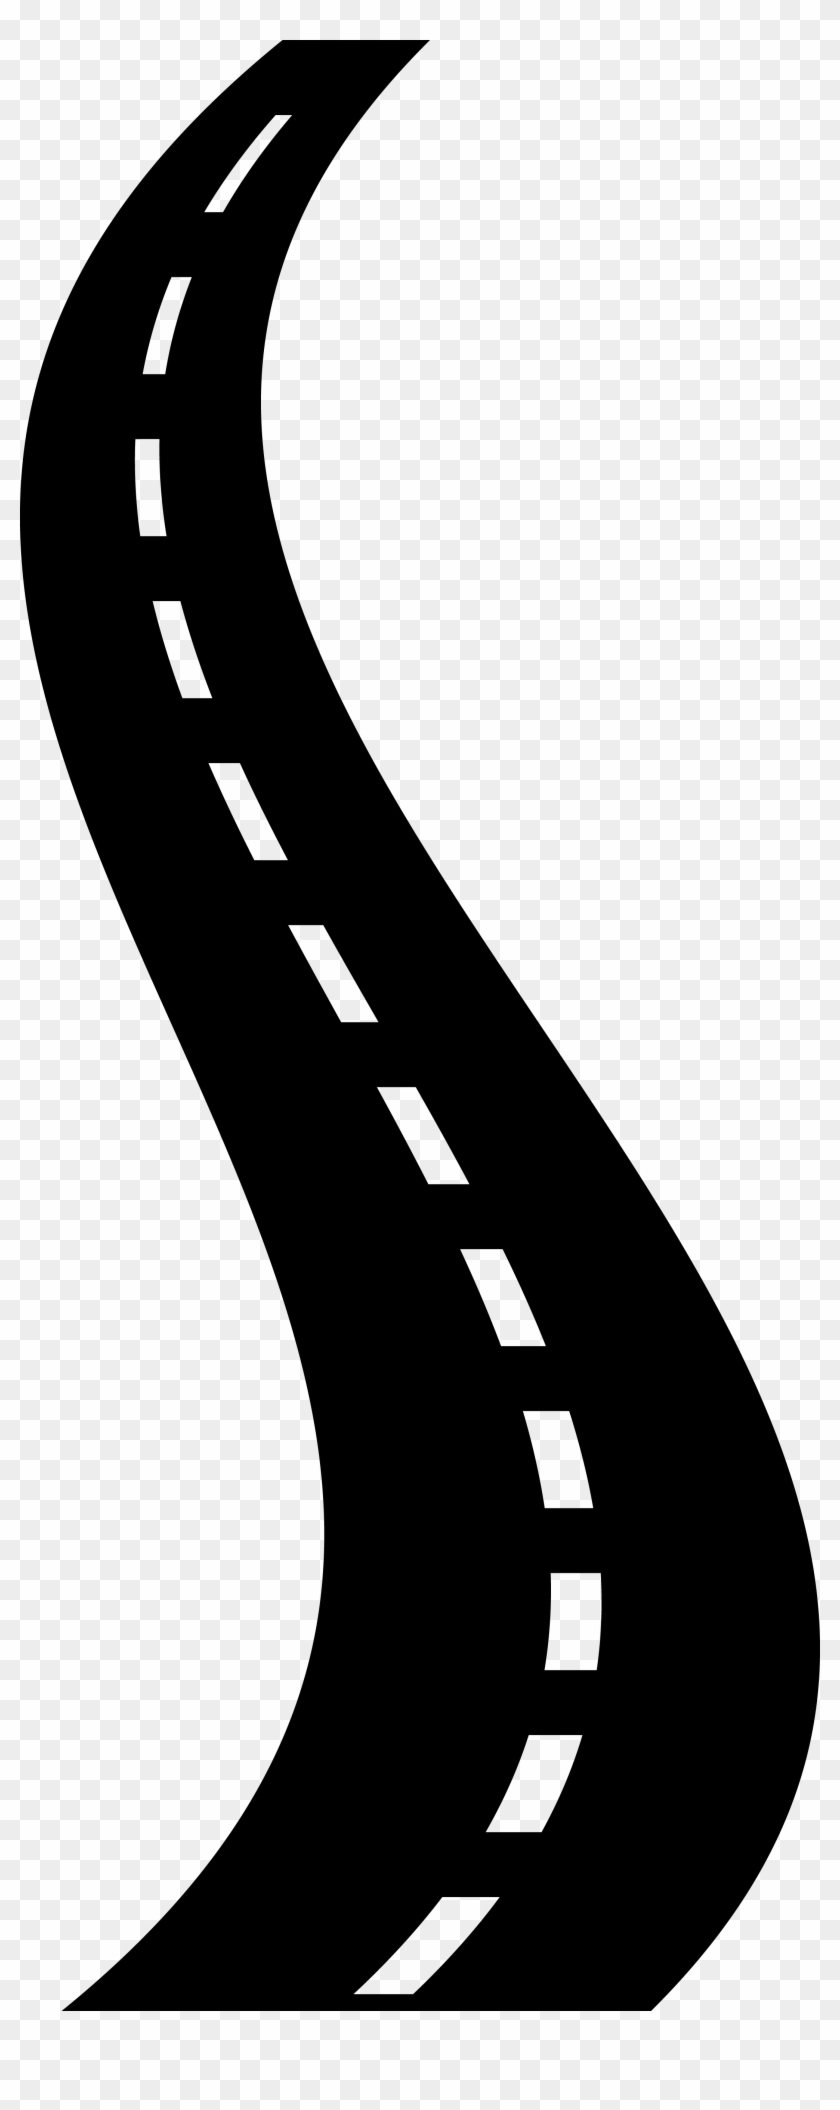 Road Clipart Black And White : clipart, black, white, Clipart, Transparent, (#581025), PikPng